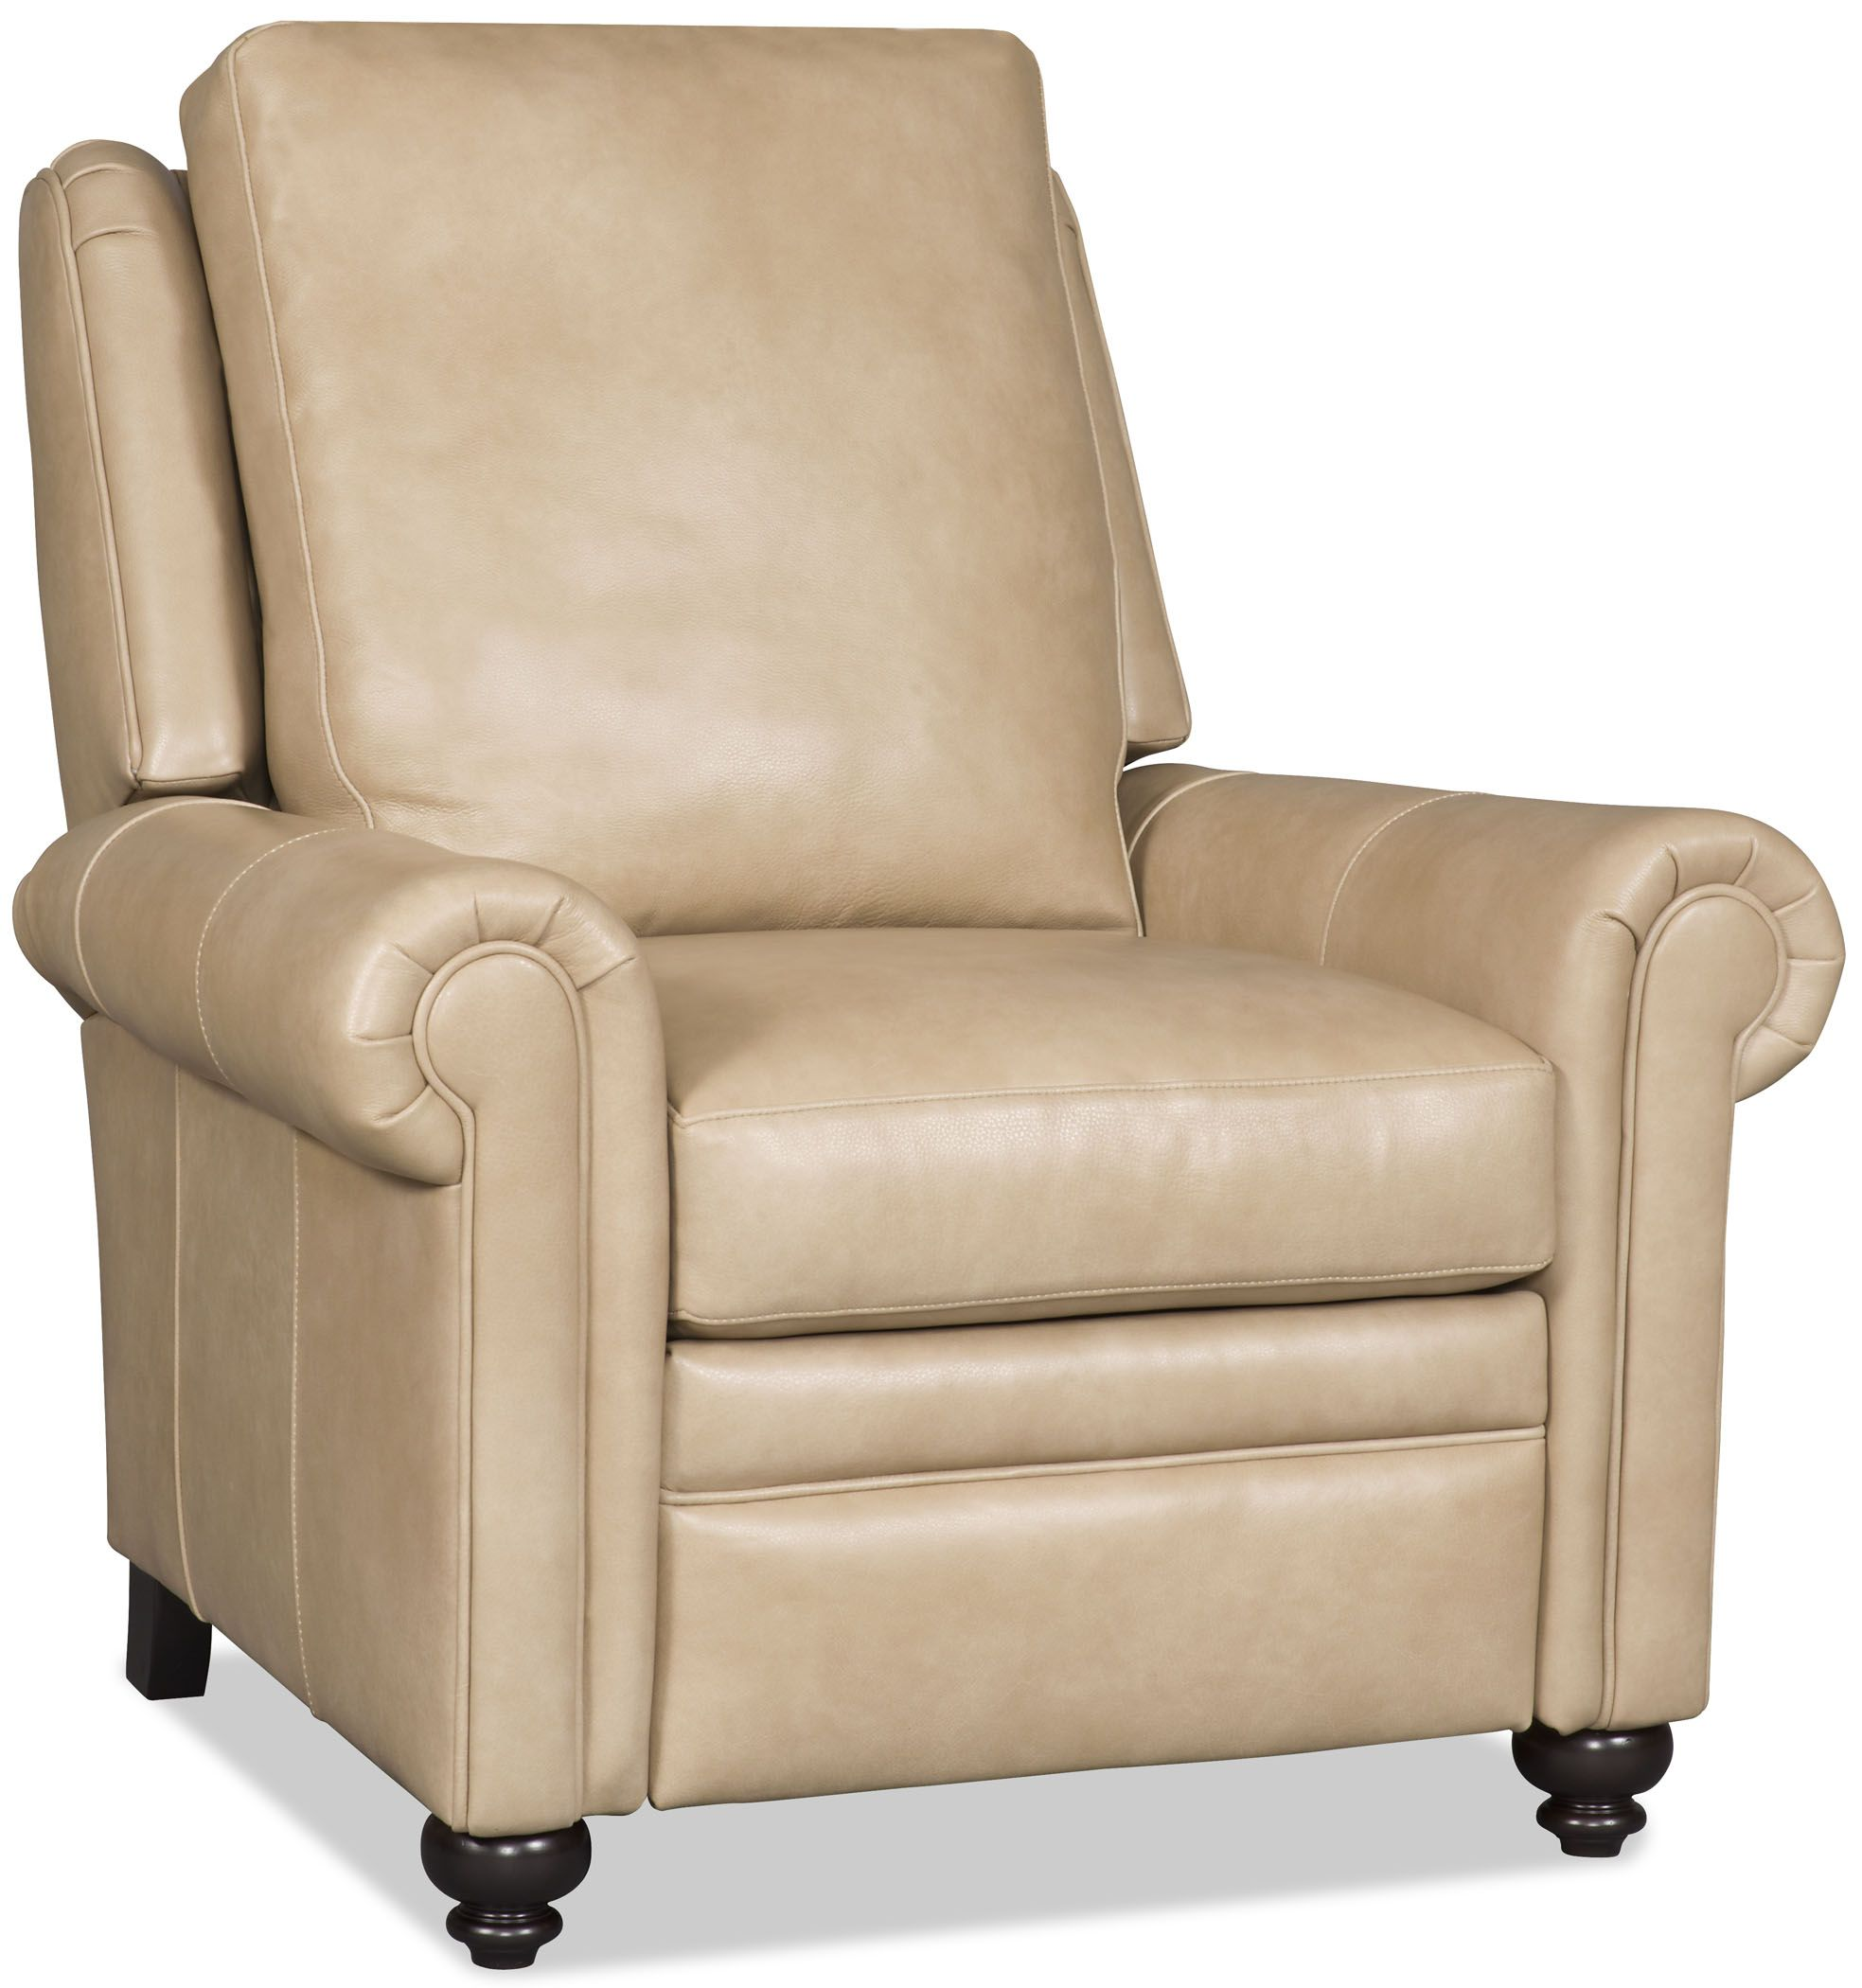 Daire Leather Recliner available at Wellingtons leather